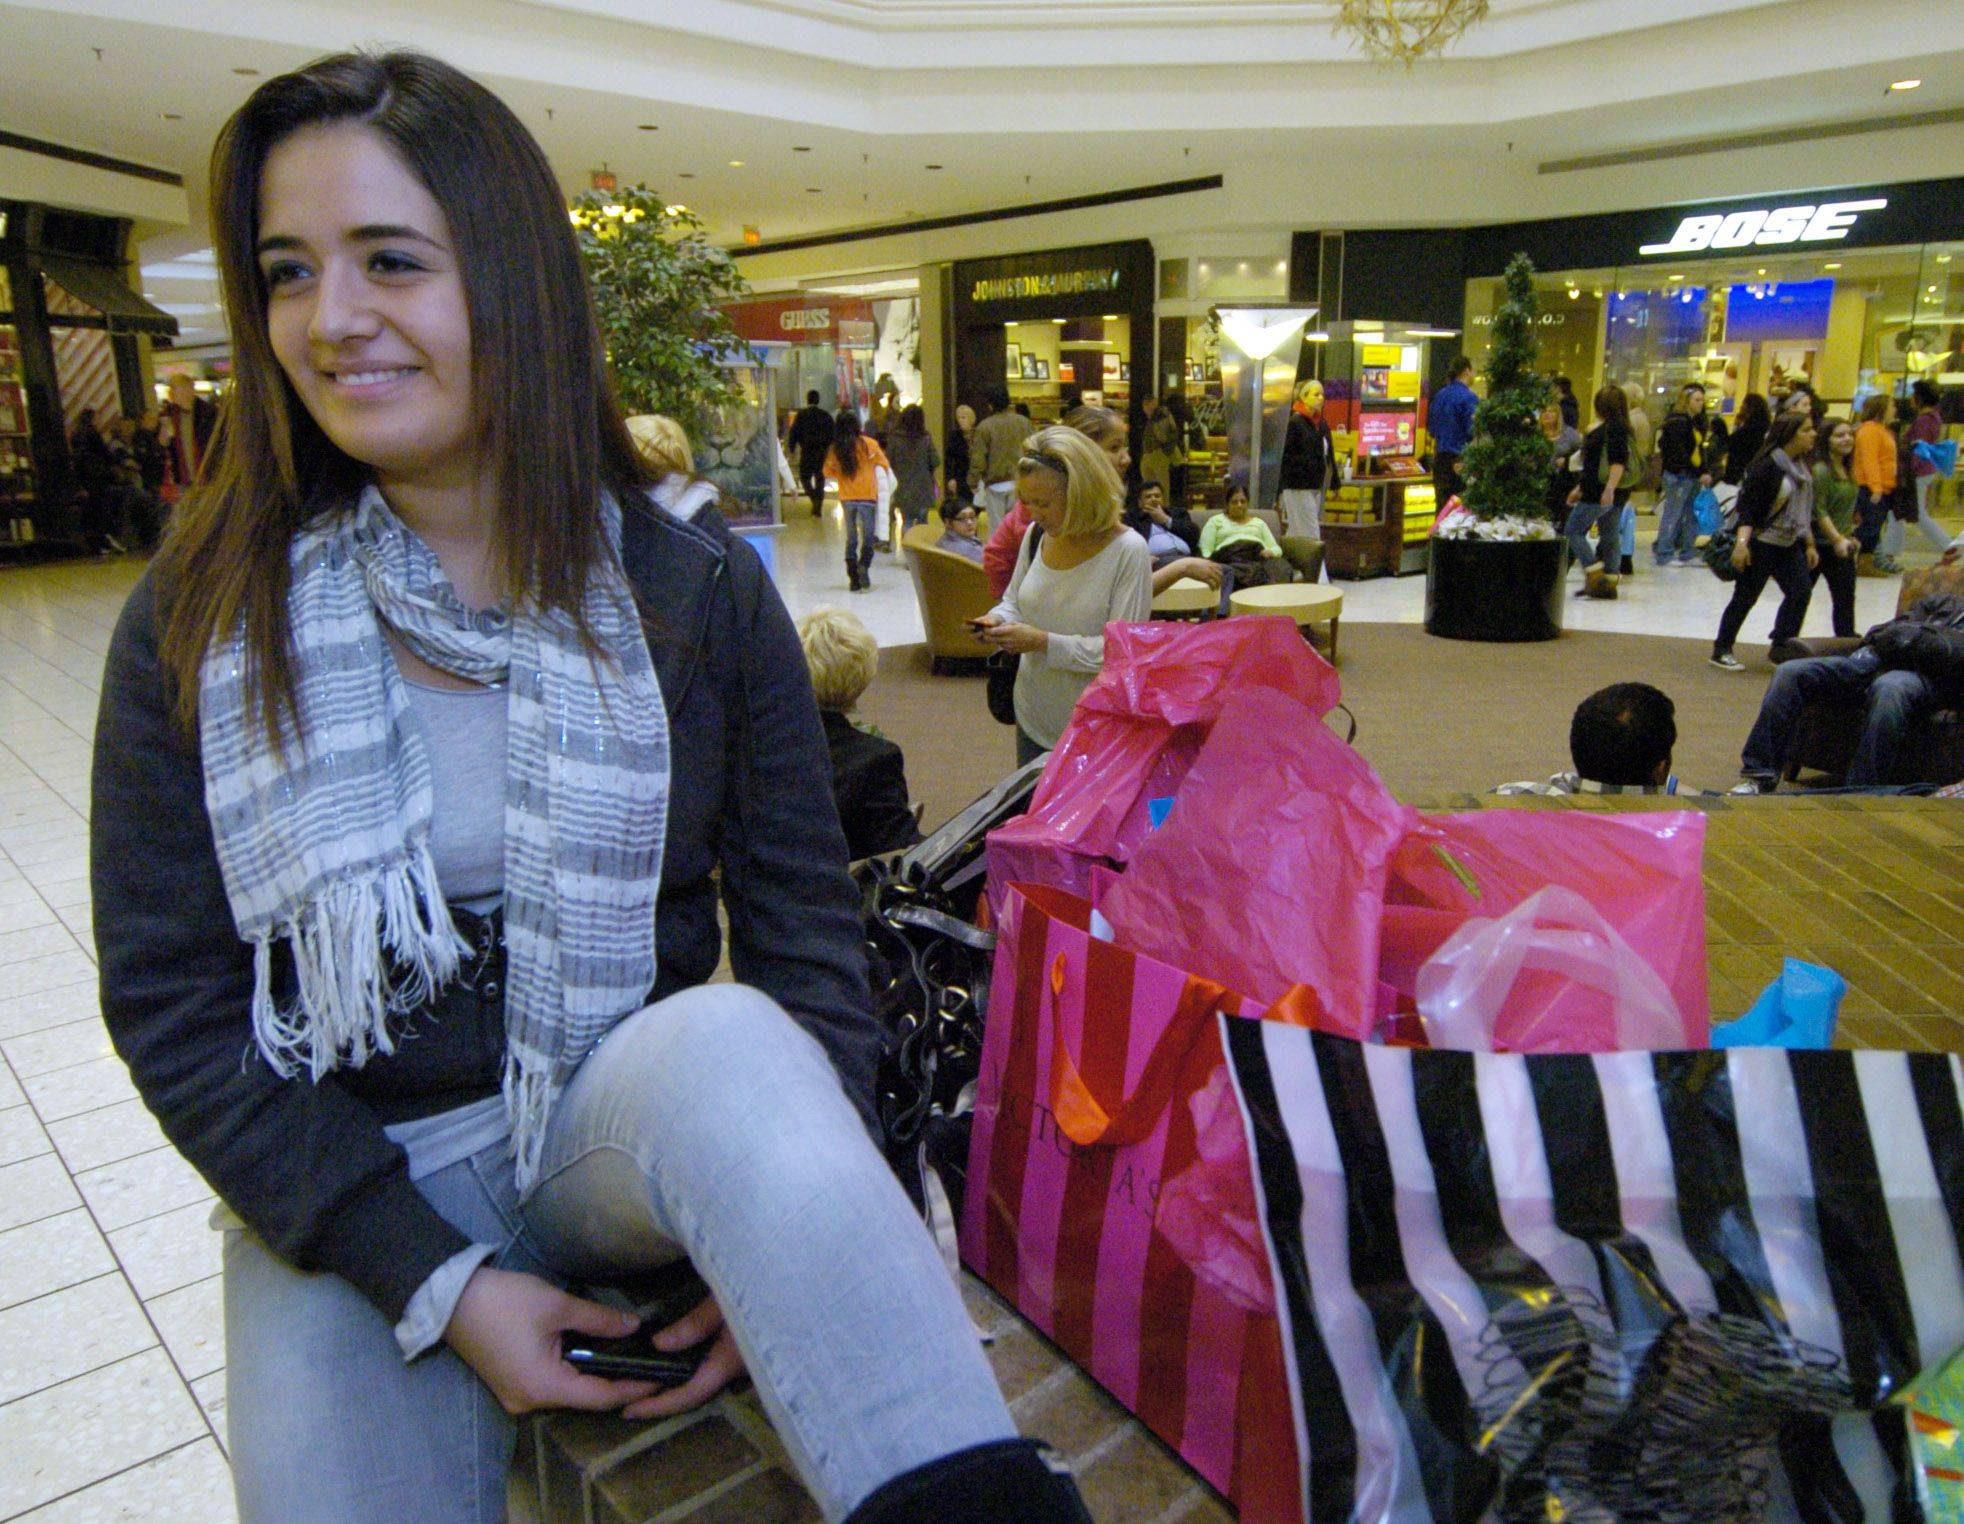 Tania Bravo of Addsion waits with the bags while a friend shops Friday.